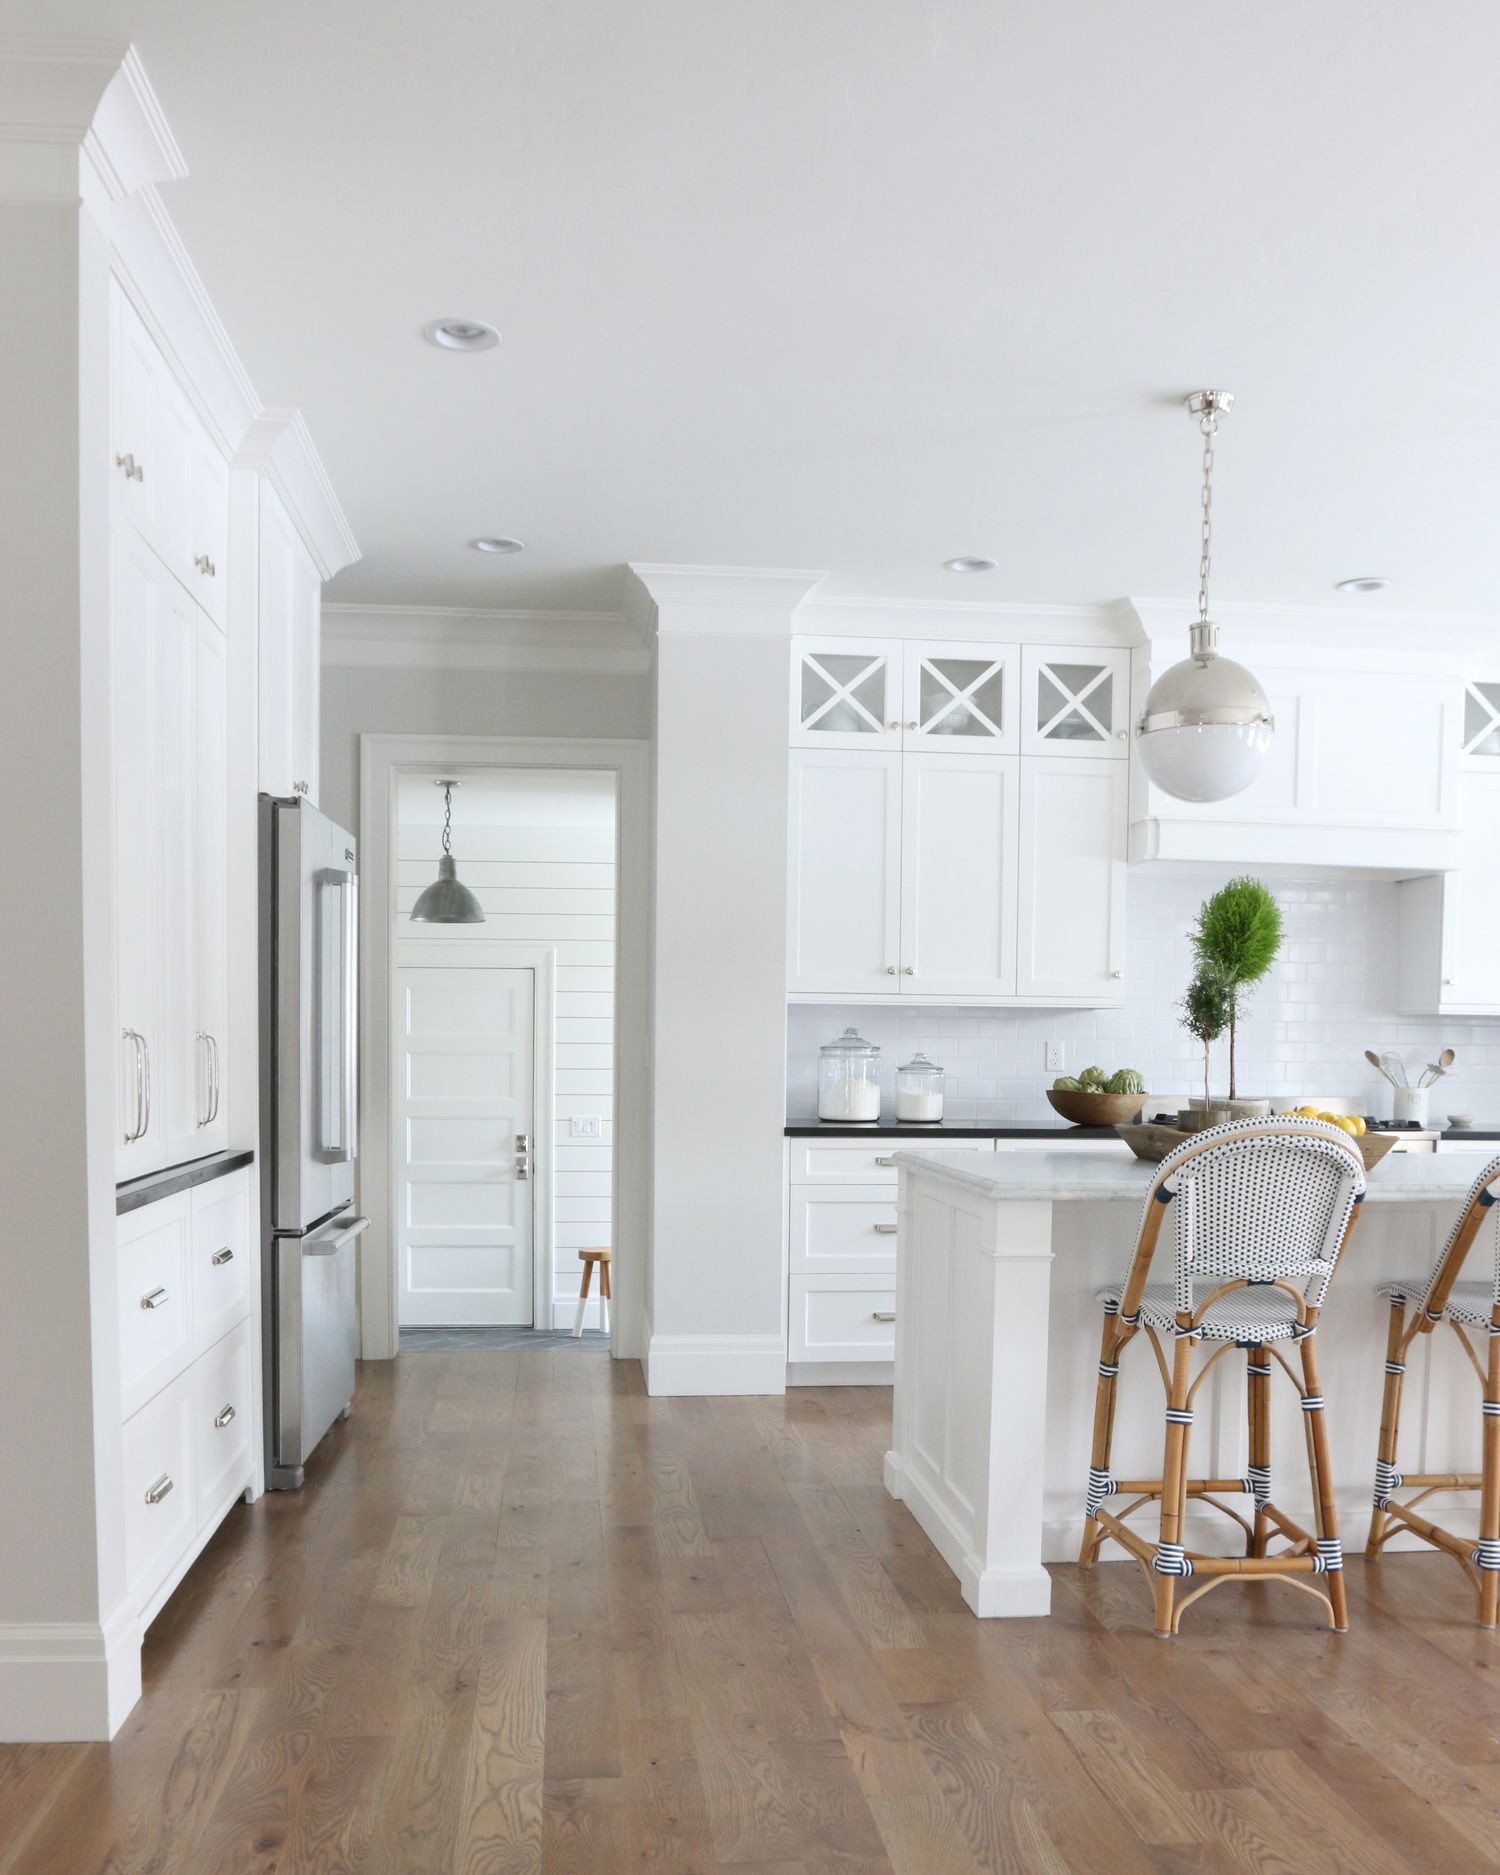 light hardwood floors wall color of the midway house kitchen pick a paint color pinterest kitchen pertaining to when you want just a hint of very light warm gray benjamin moore classic gray always looks amazing